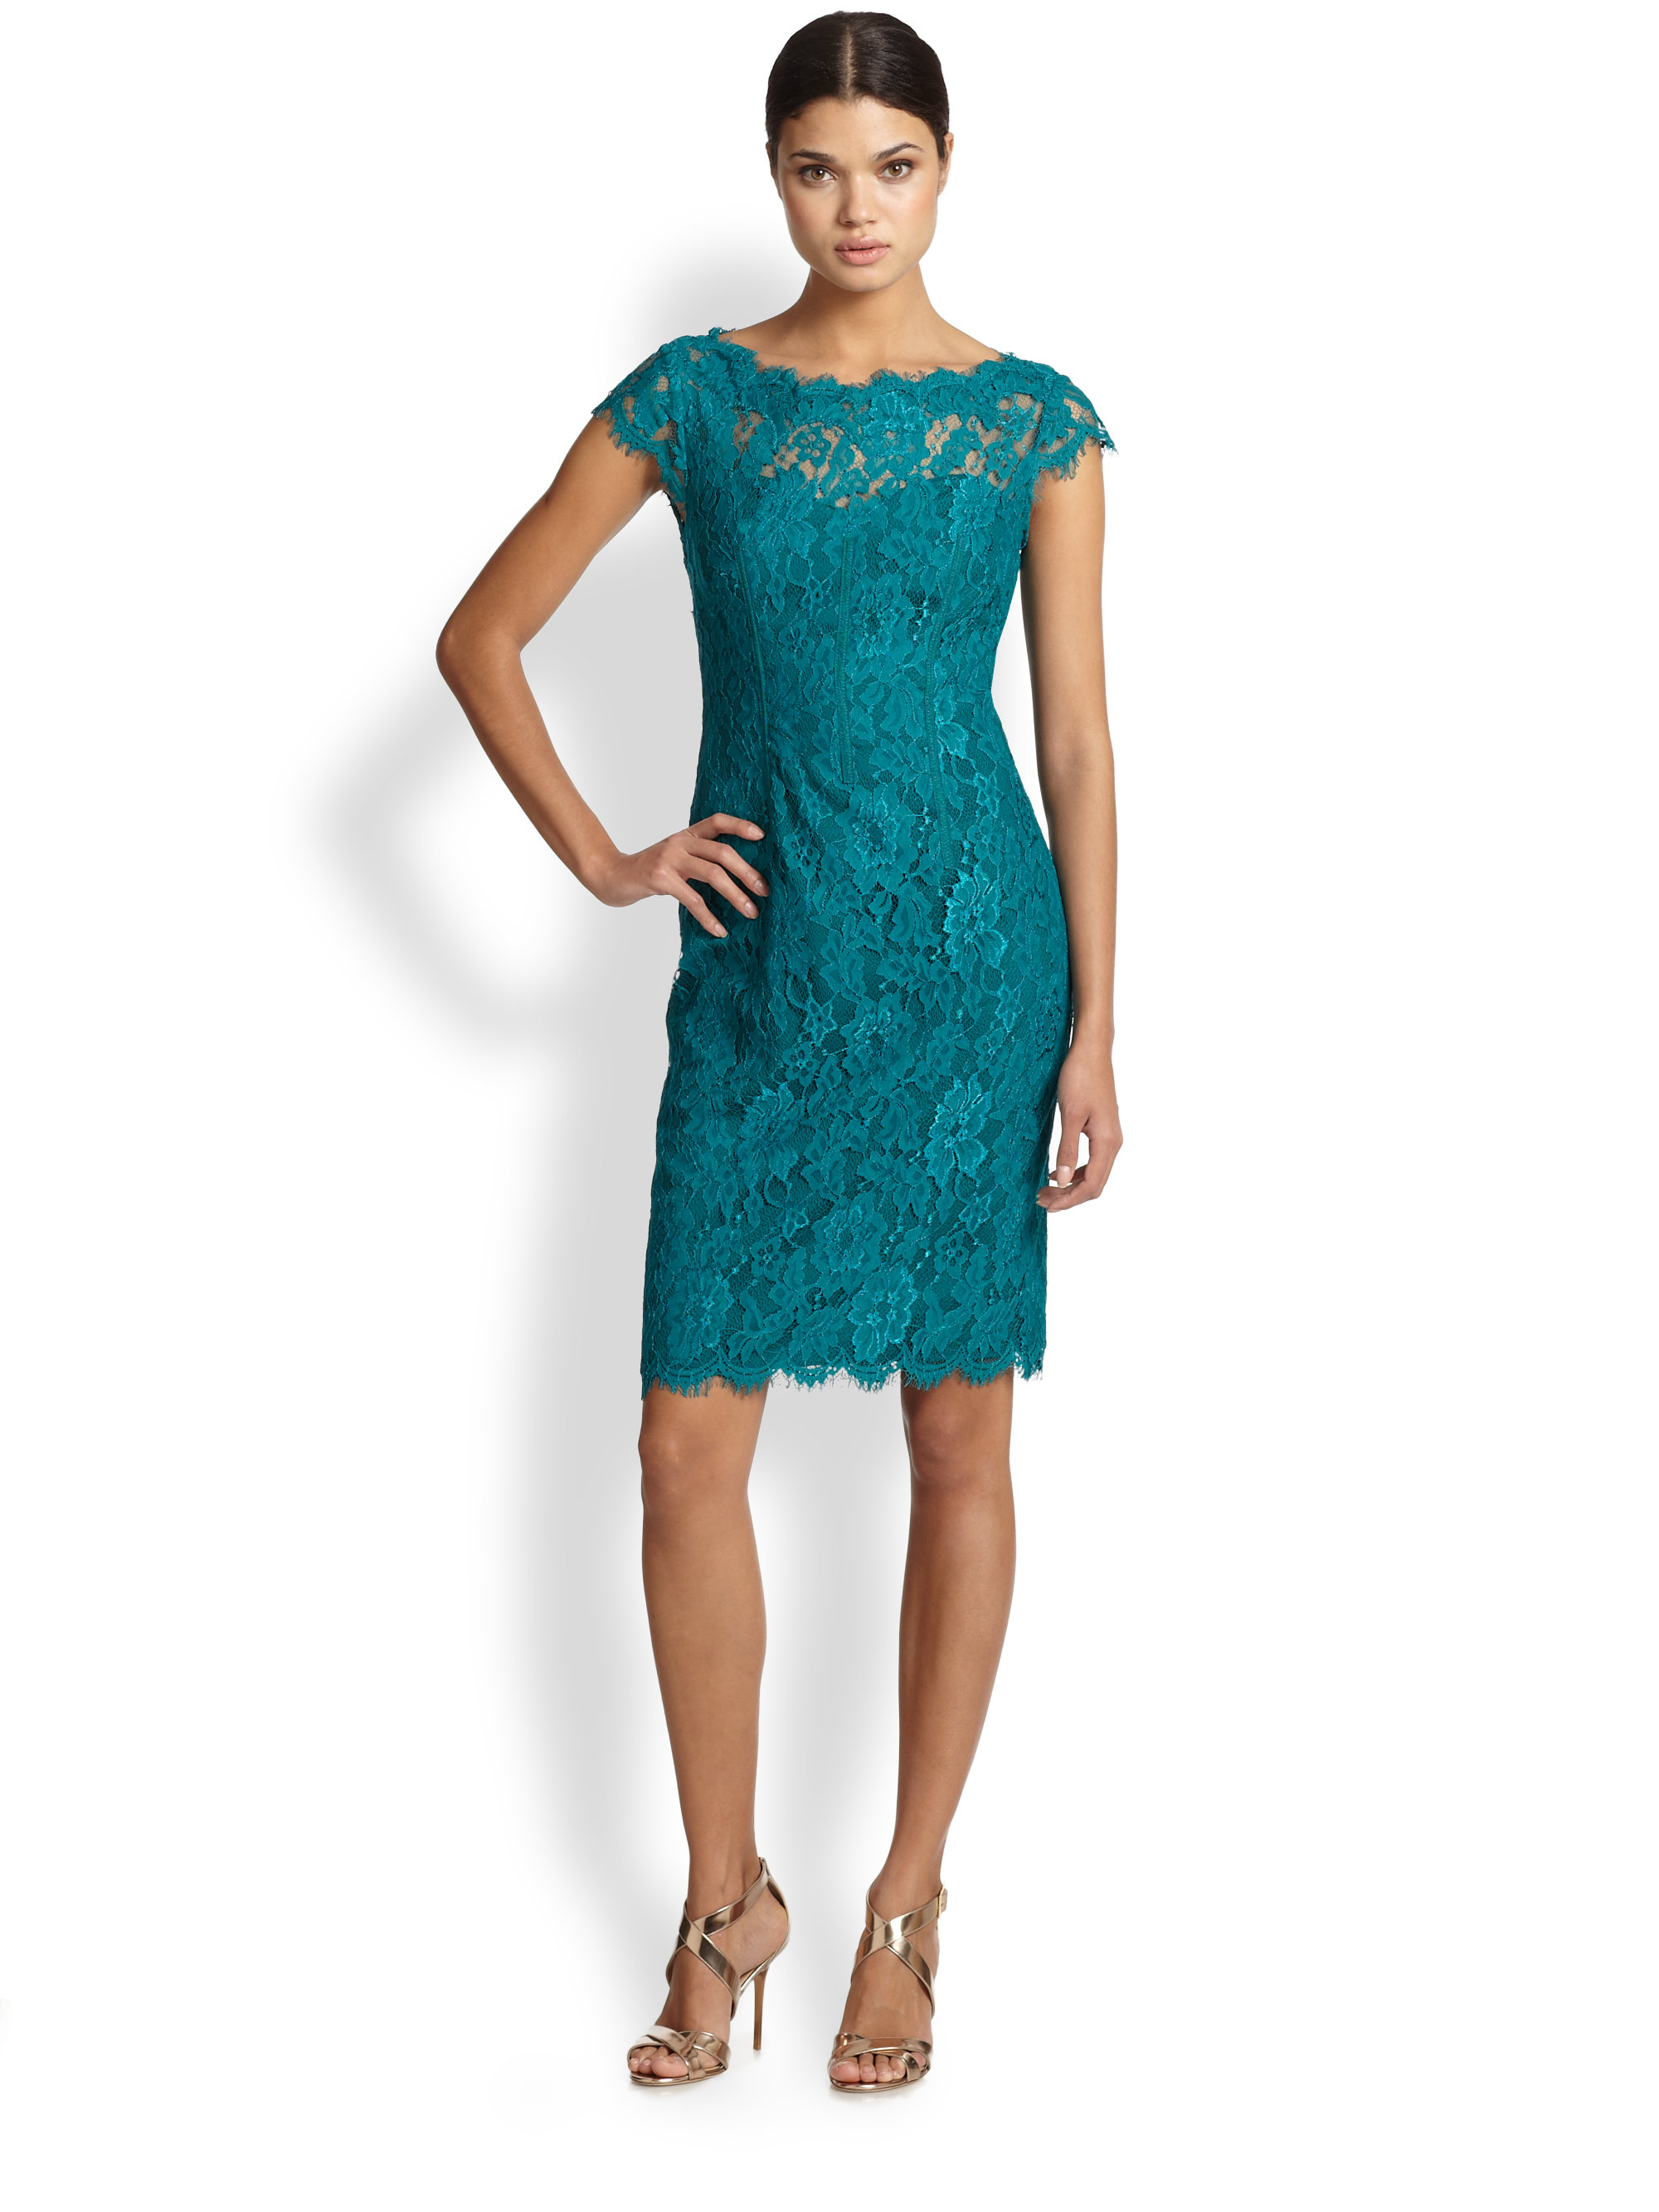 Teal Lace Gowns